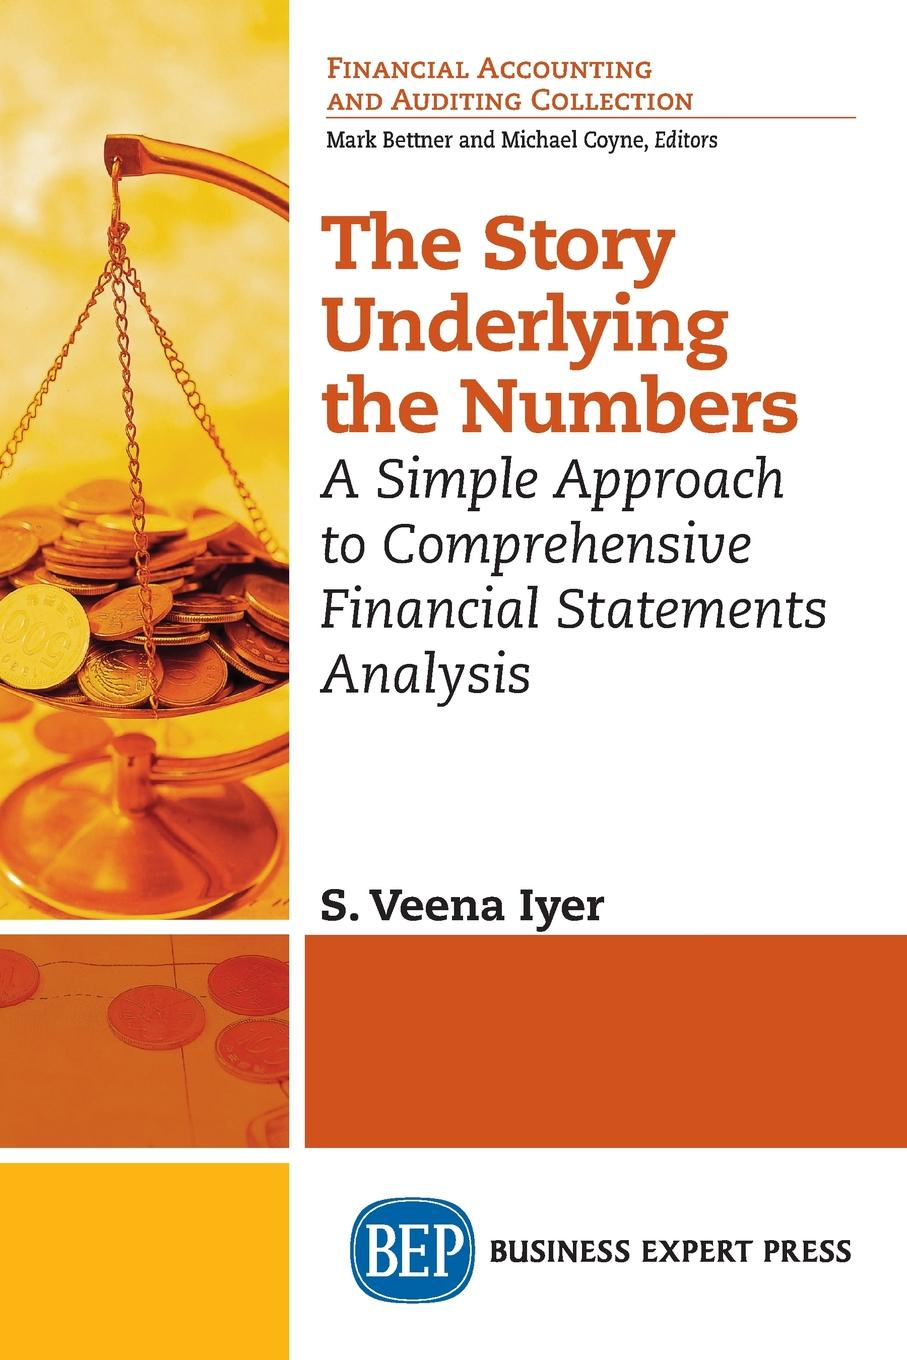 S. Veena Iyer The Story Underlying the Numbers. A Simple Approach to Comprehensive Financial Statements Analysis frank fabozzi j analysis of financial statements